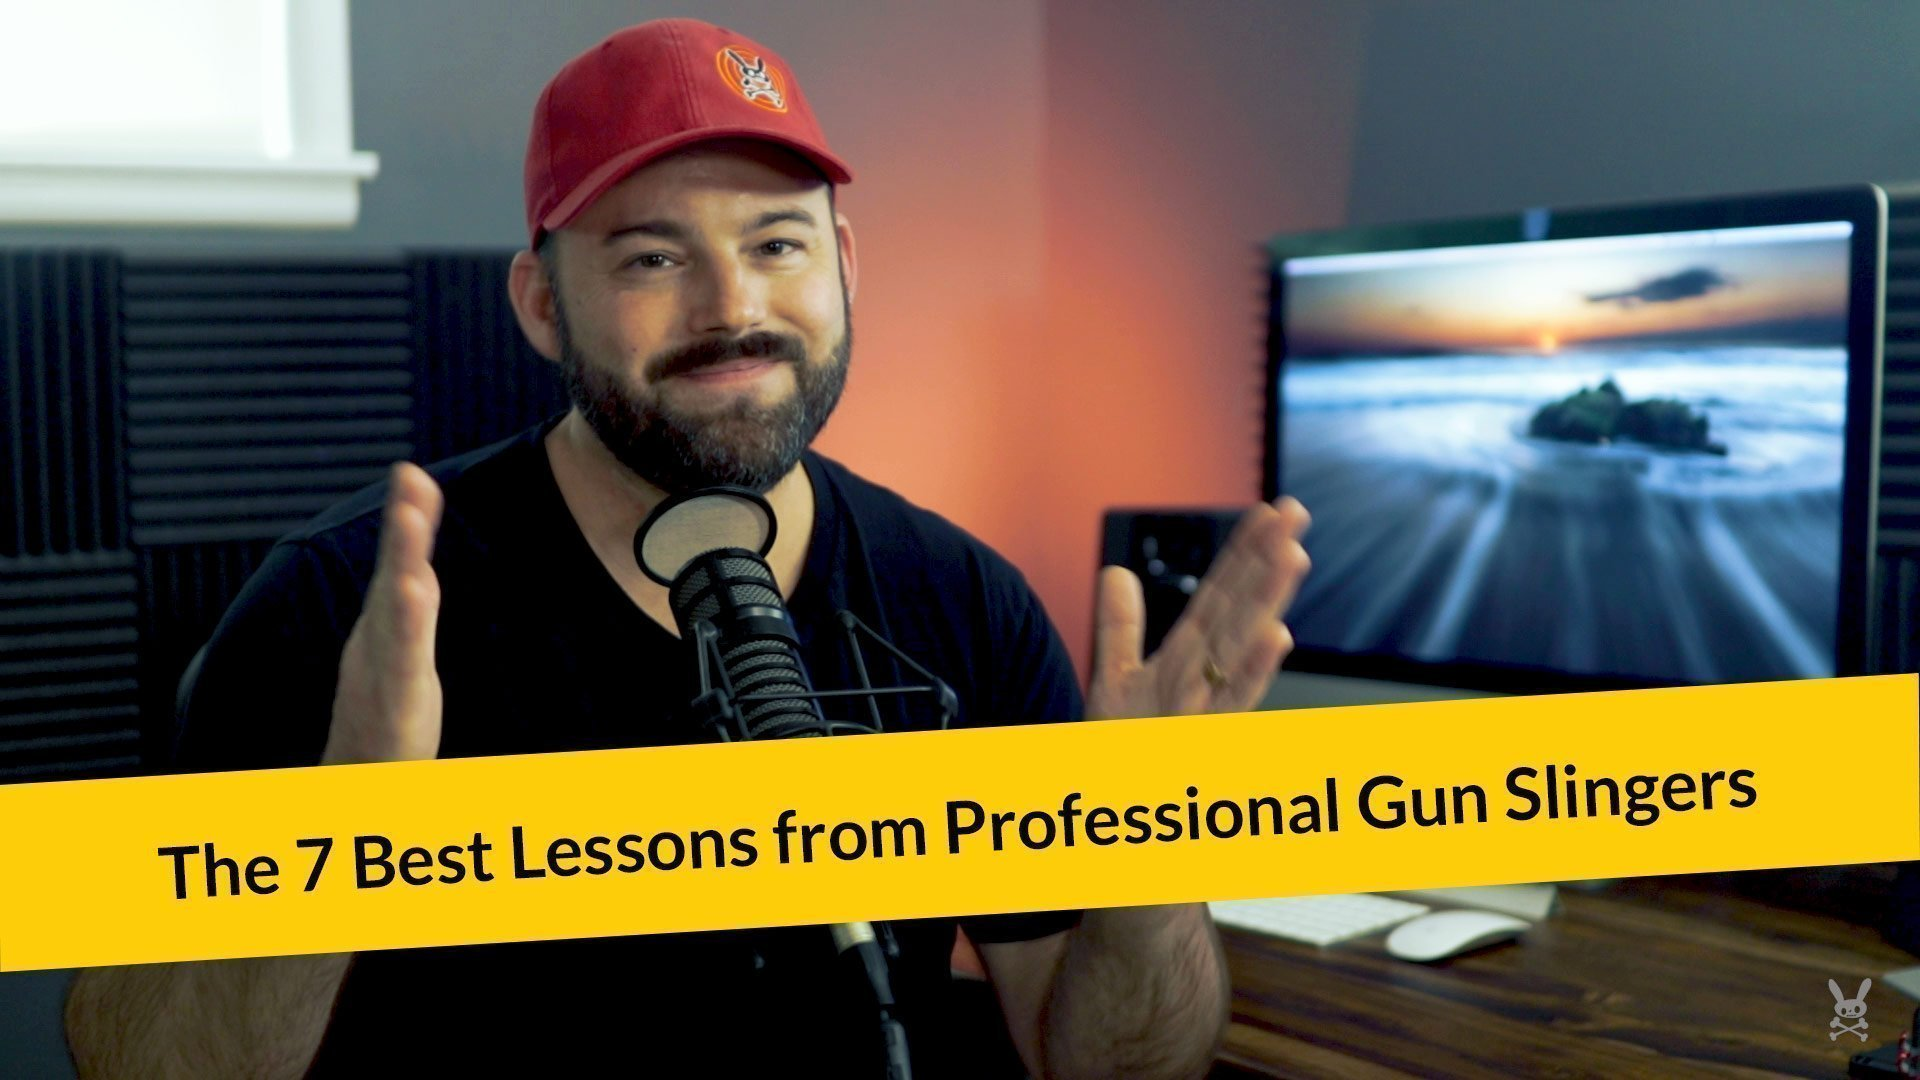 E296: The 7 Best Lessons From Professional Gunslingers